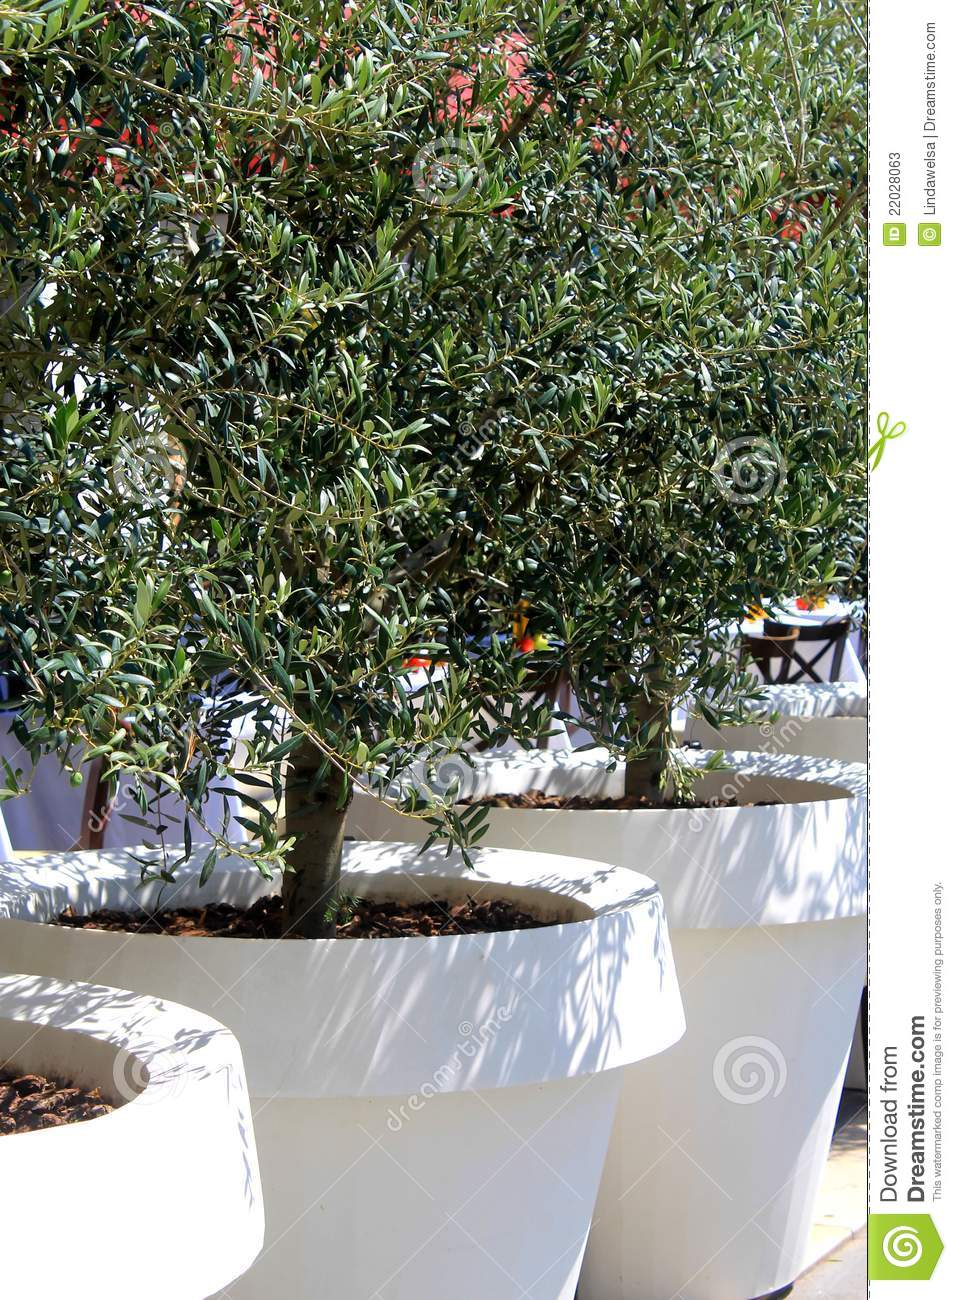 olive tree in flower pot stock photos image 22028063 flower garden clipart images flower garden clipart black and white